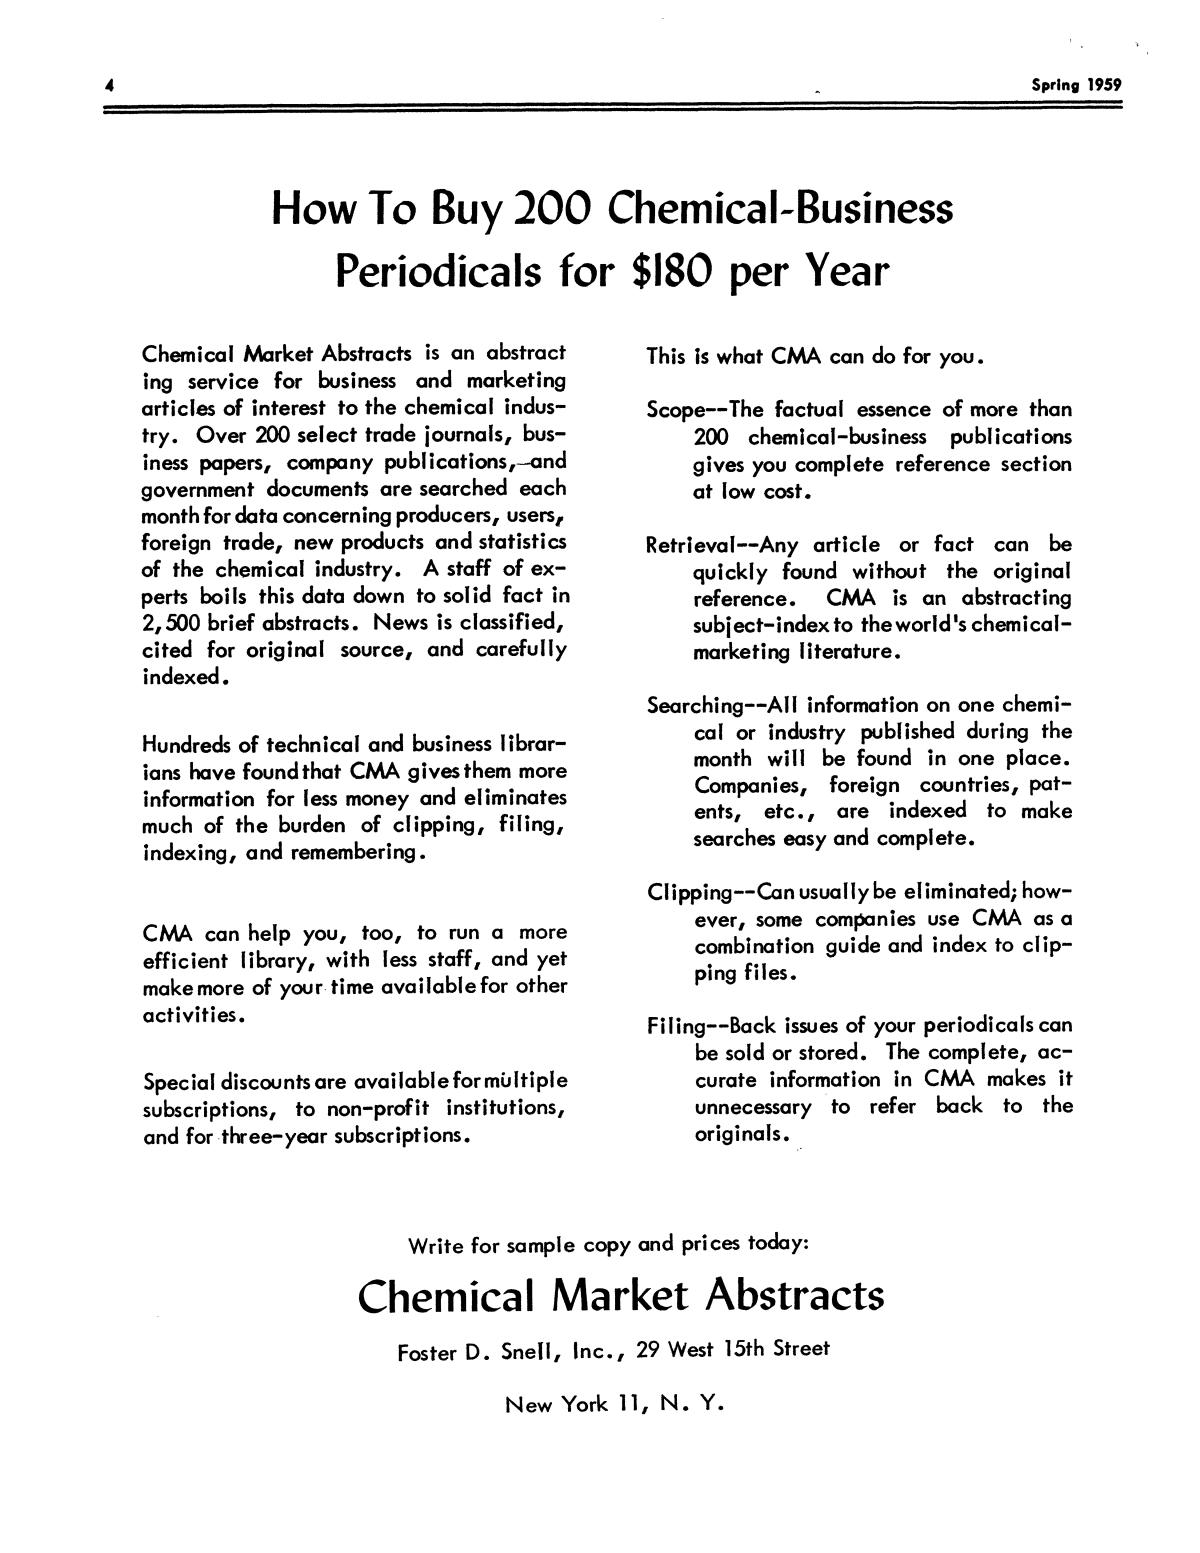 Chemical Literature, Volume 11, Number 1, Spring 1959                                                                                                      4